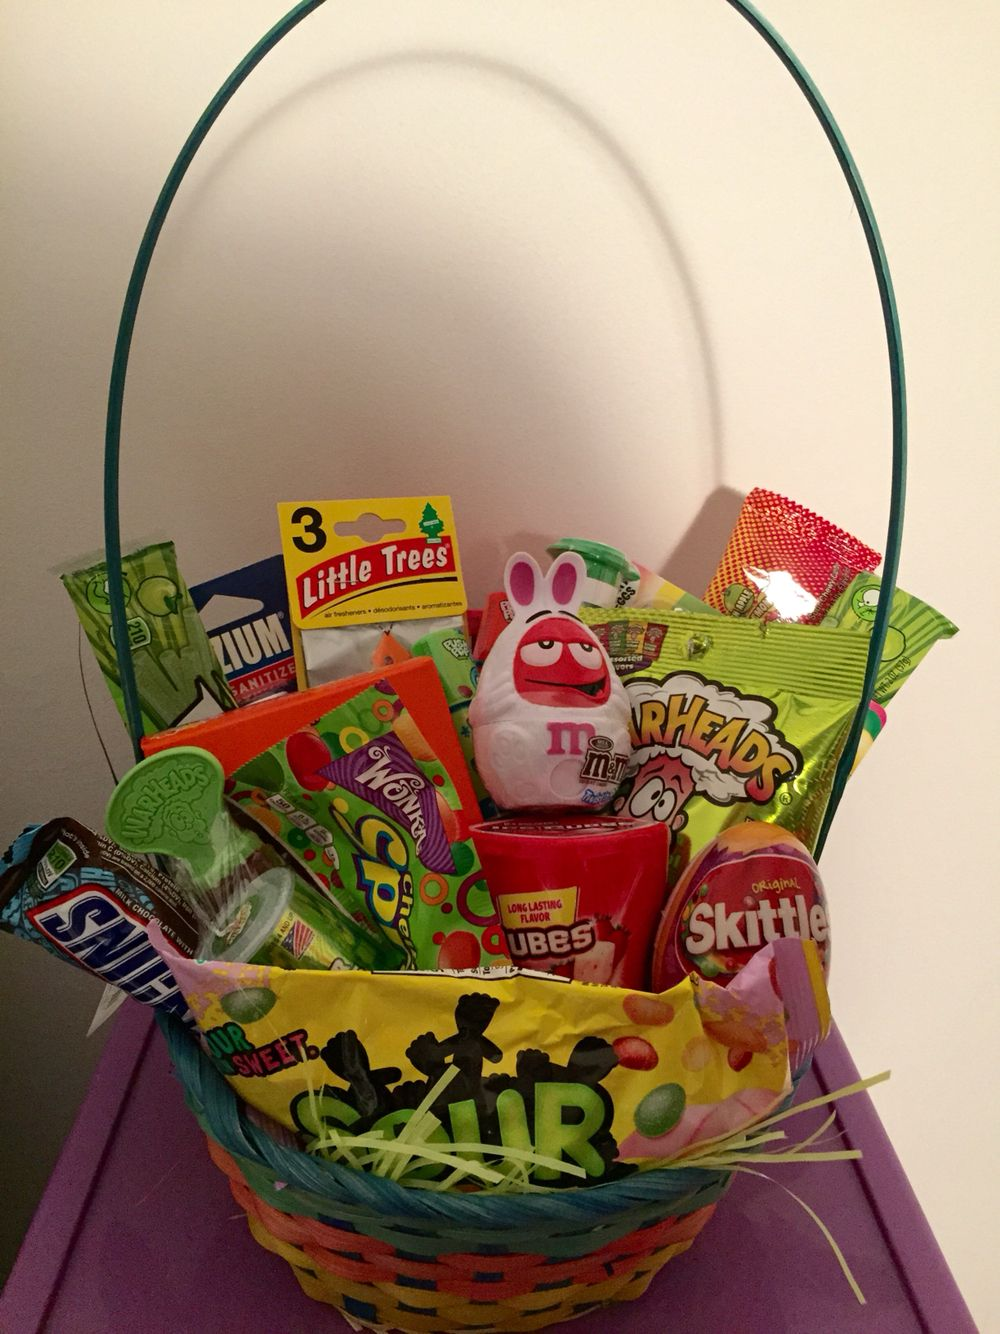 Easter basket for my boyfriend full of his favorite candies and easter basket for my boyfriend full of his favorite candies and goodies negle Image collections